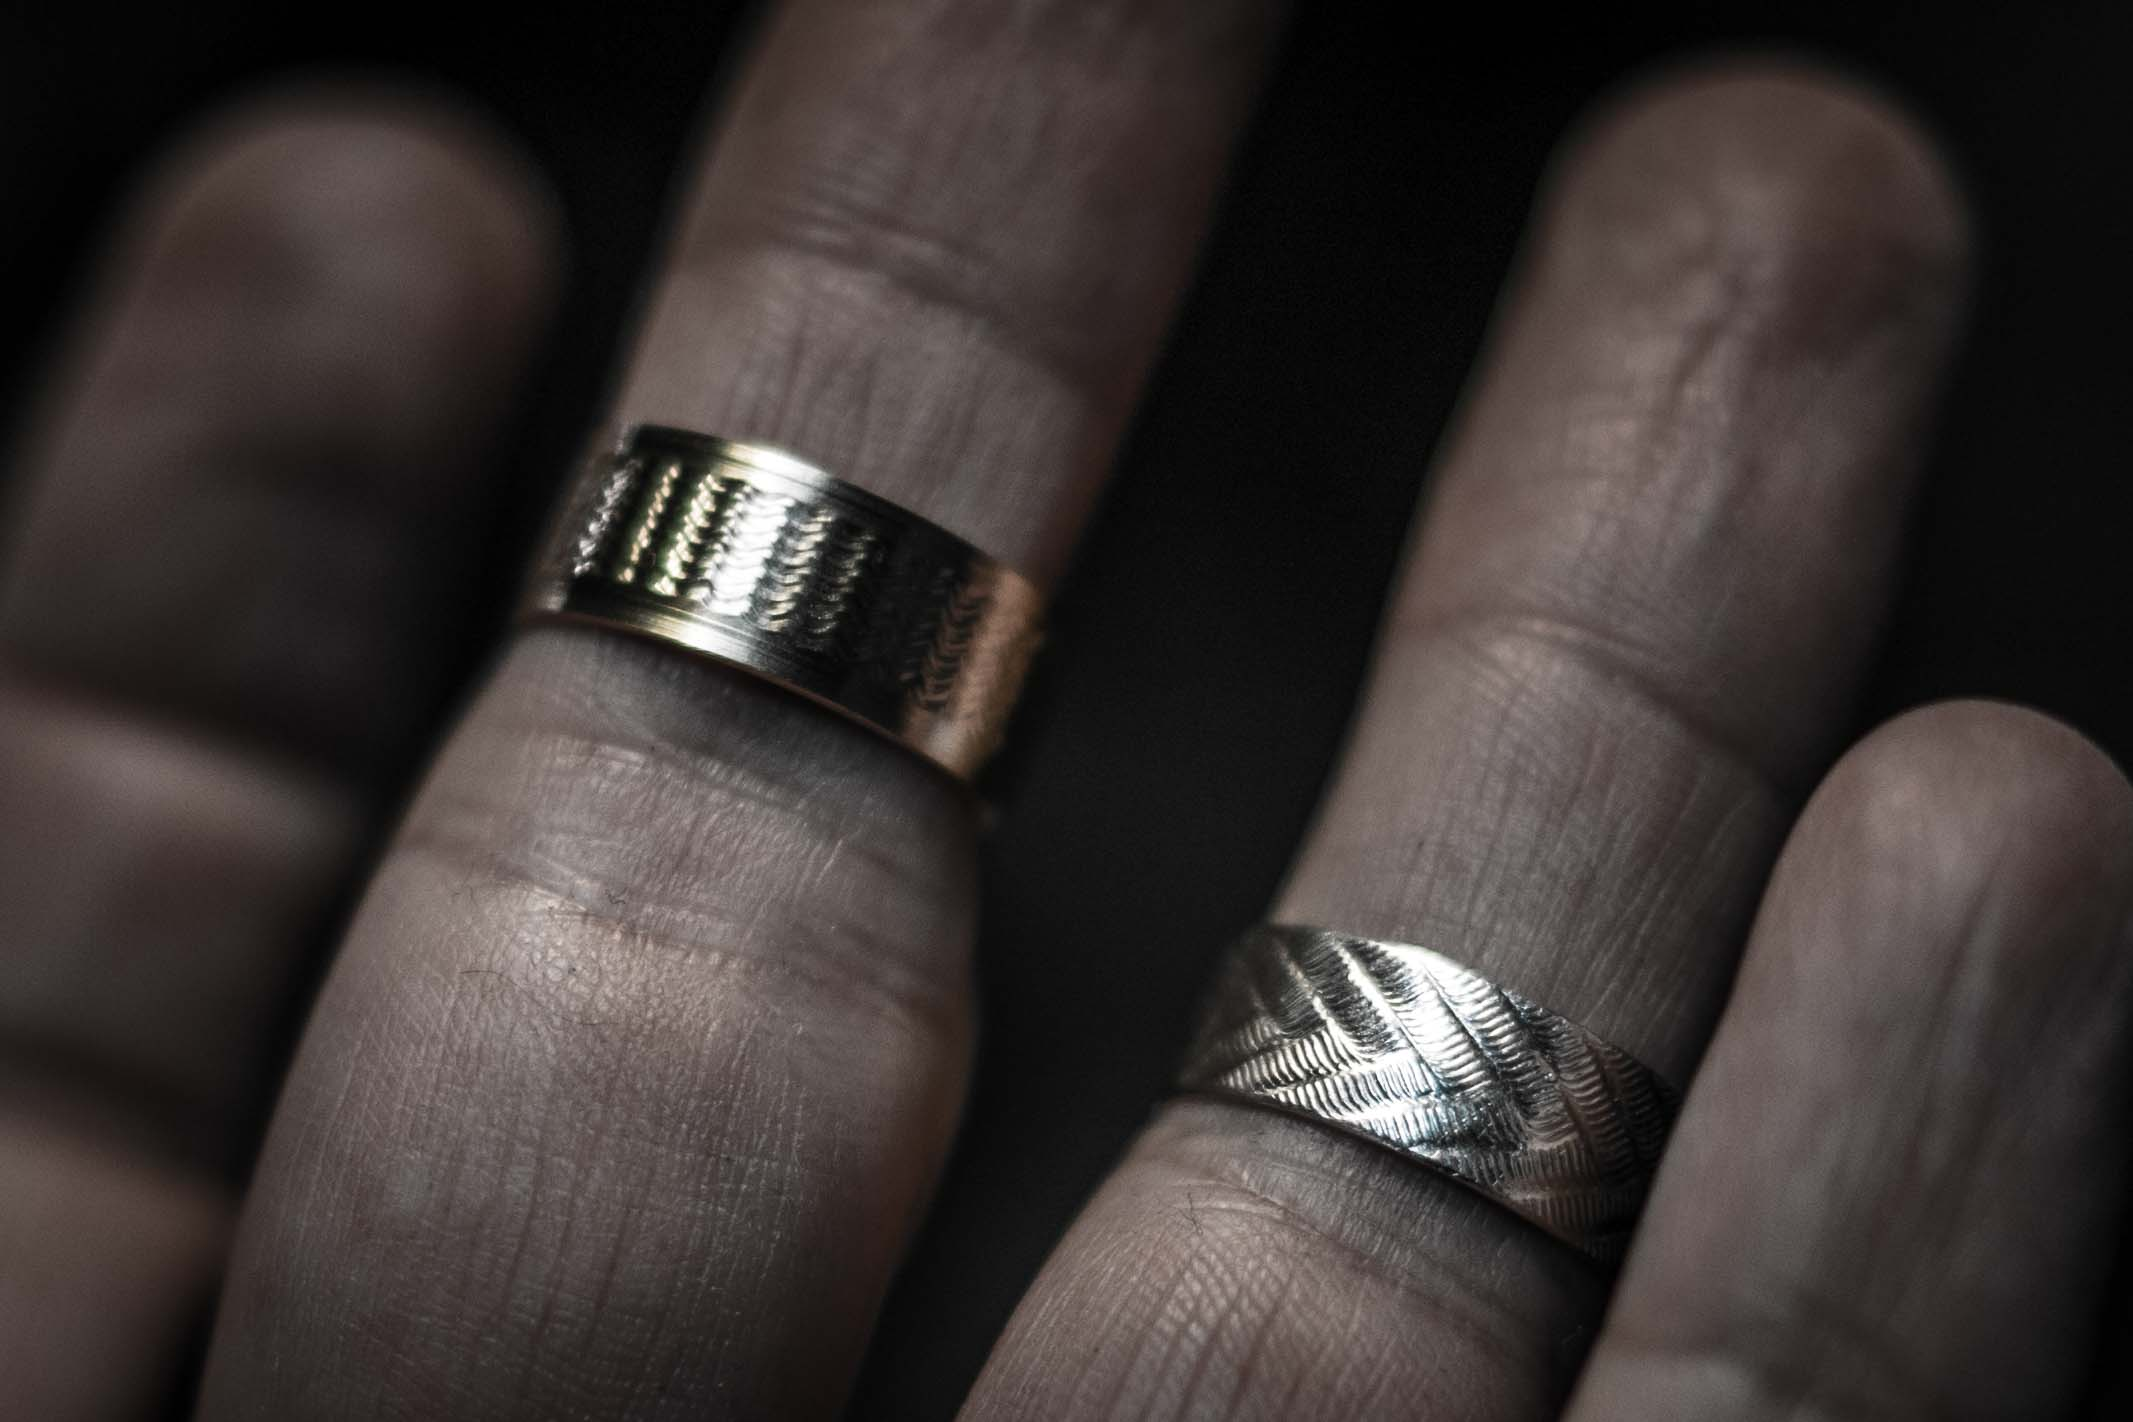 item band diamonds carved new s shardon titanium eternity outdoor g with mechanical wedding style cz rings unique pure antler ring men